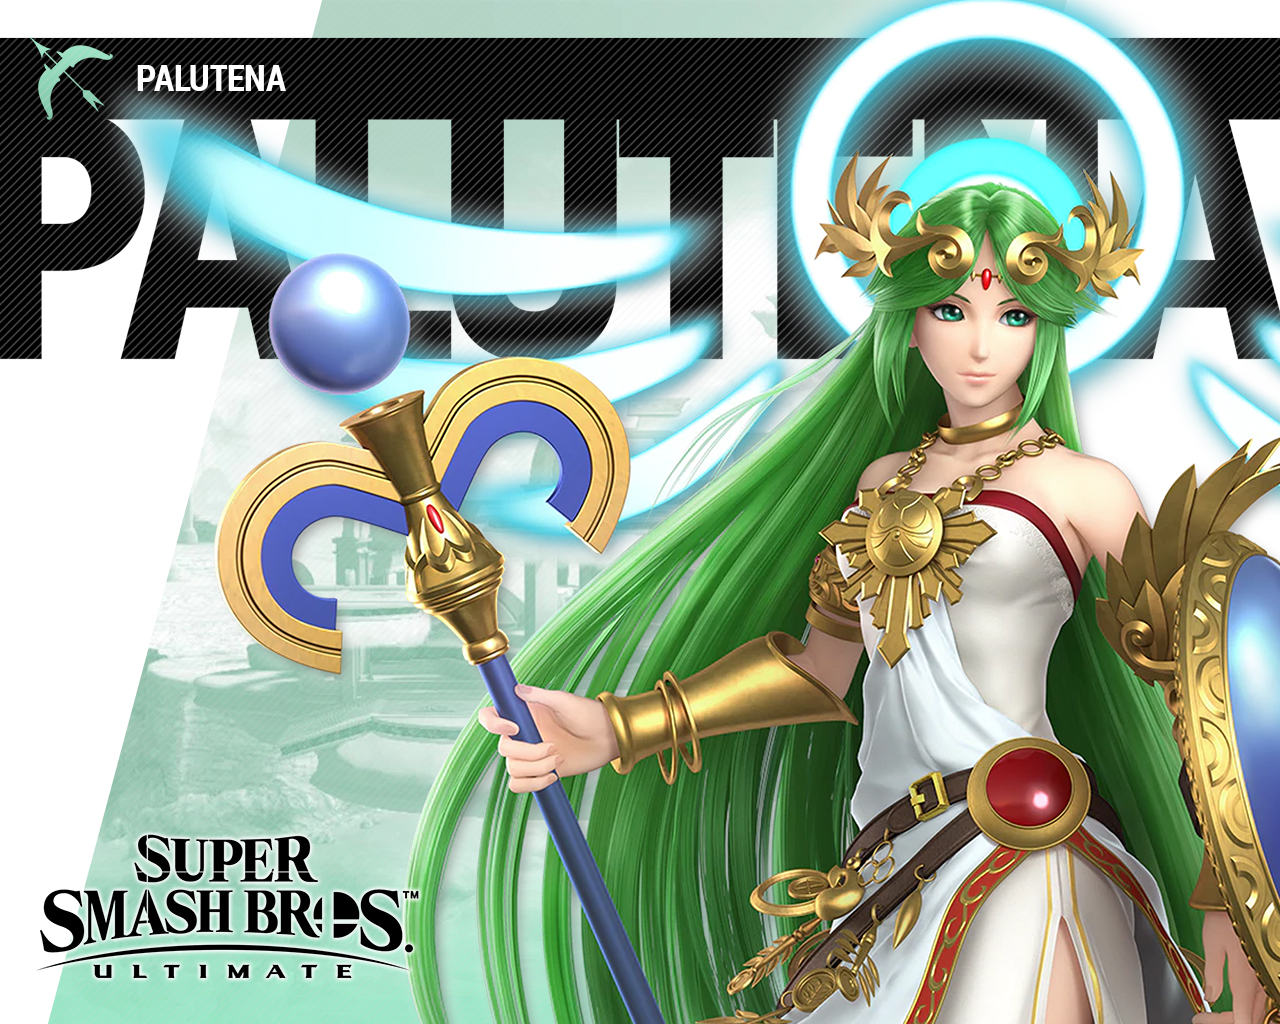 Animated Wallpaper Iphone 7 Super Smash Bros Ultimate Palutena Wallpapers Cat With